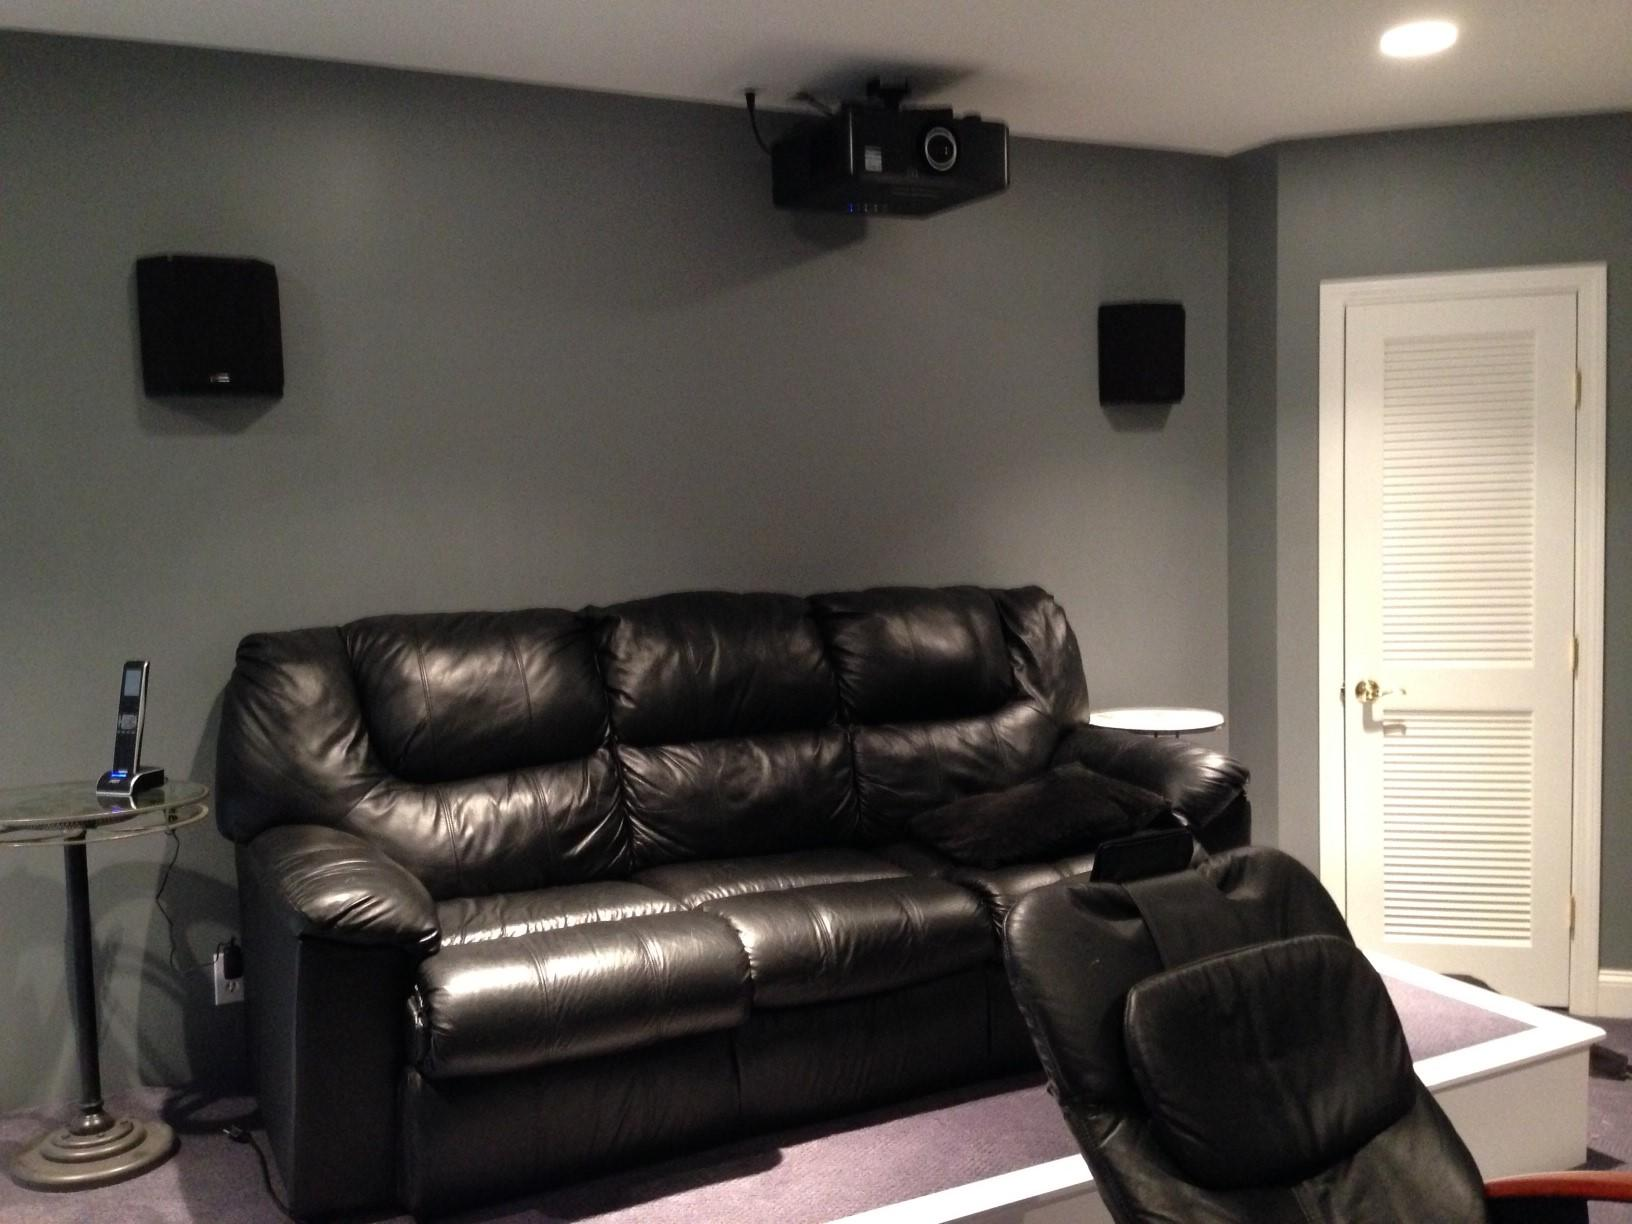 Back of theater room with projector, seating and surround sound